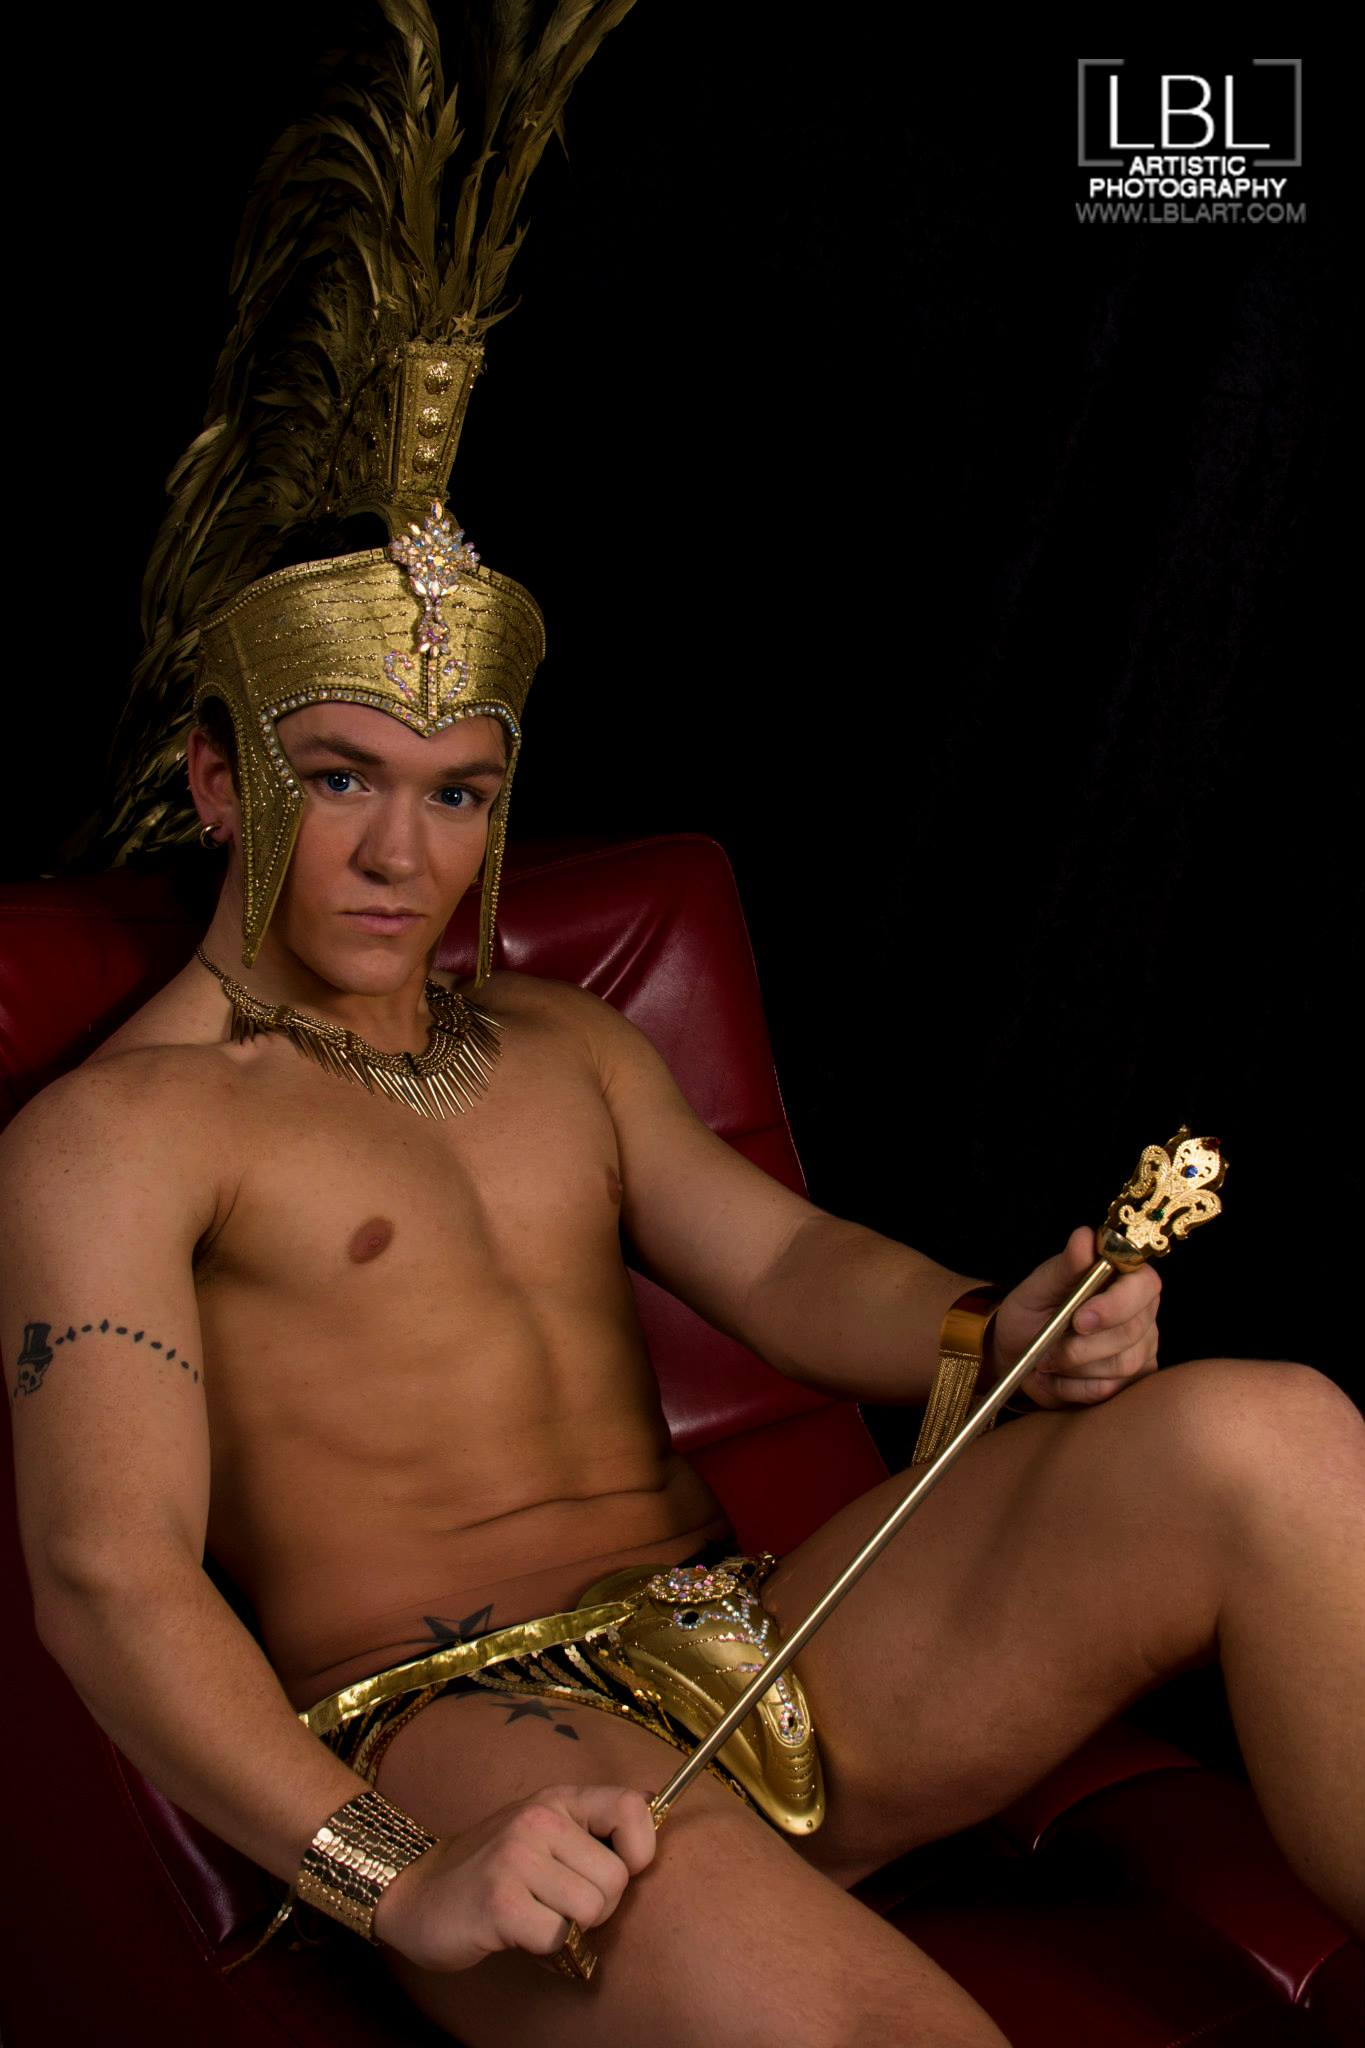 Apollo Summers - Photo by LBL Artistic Photography